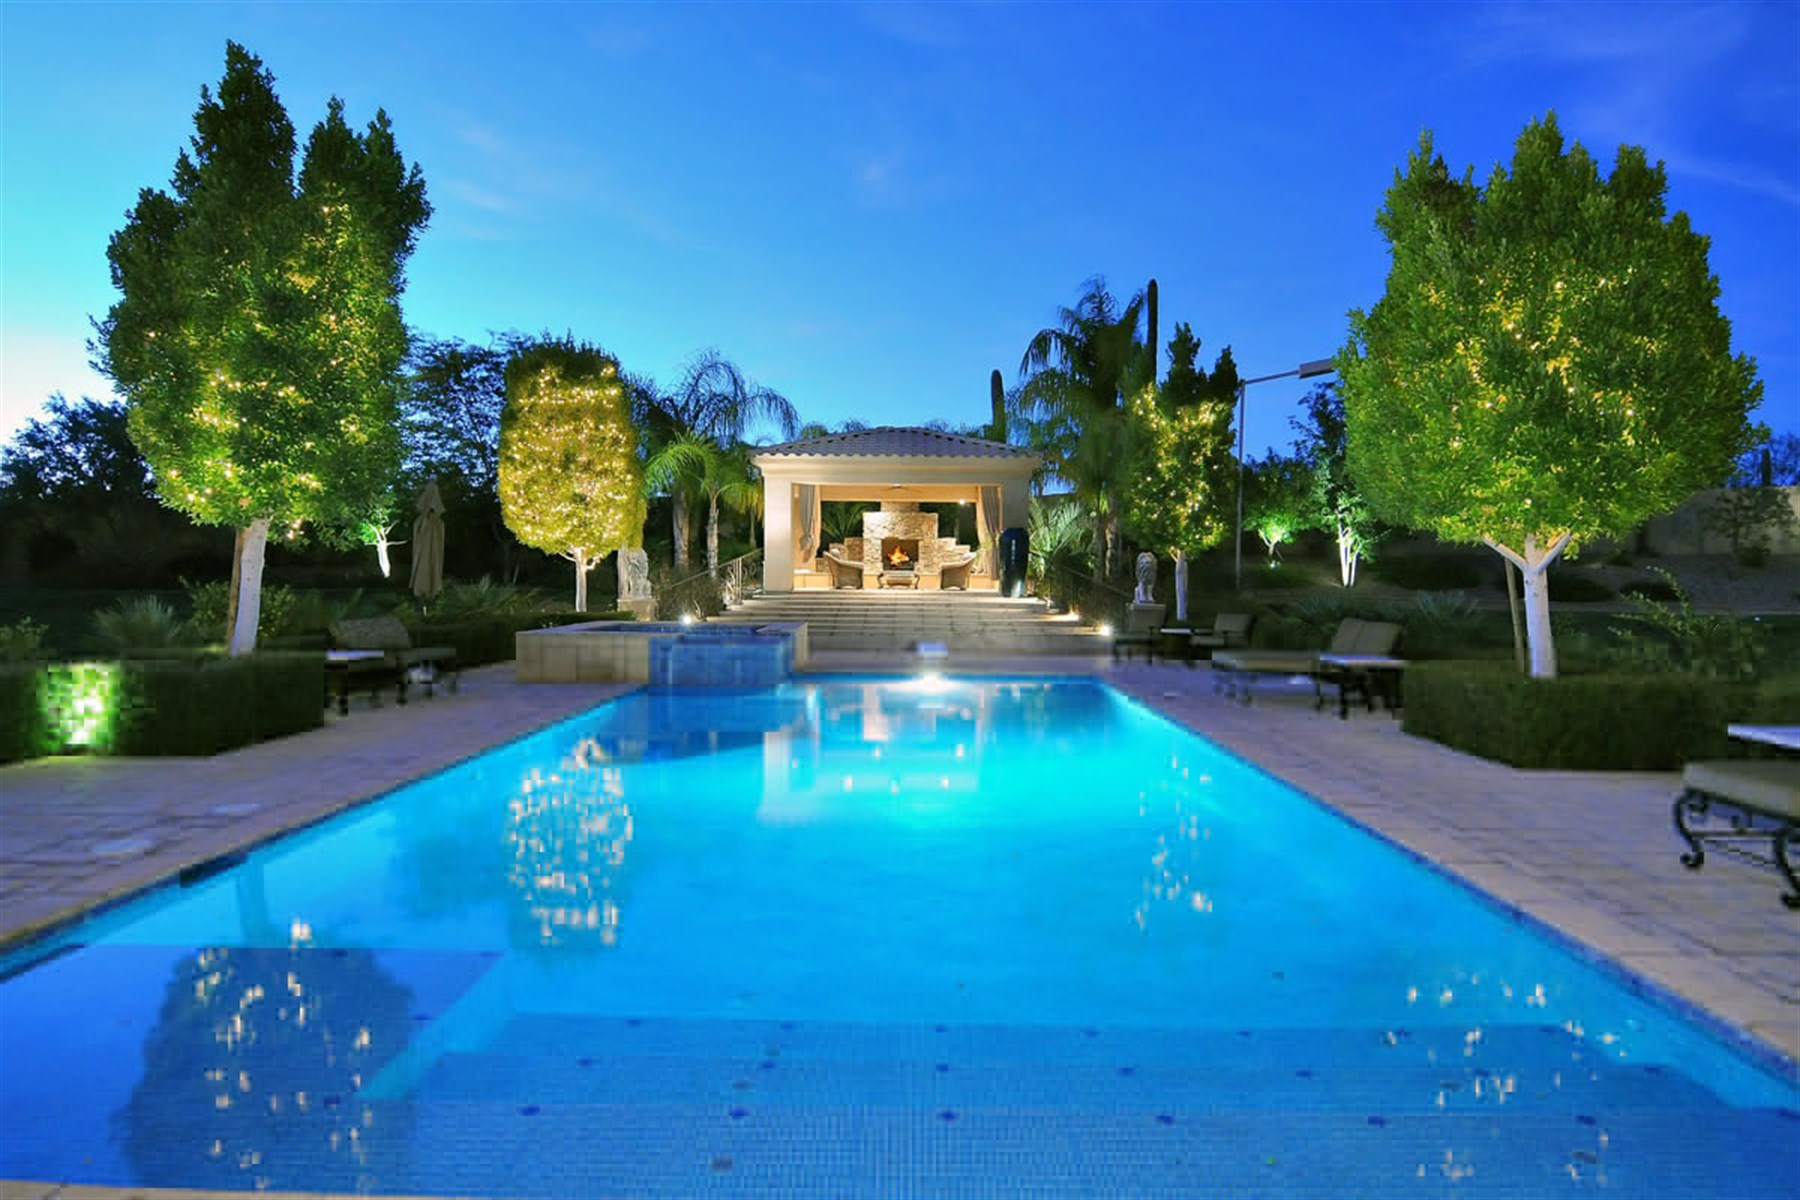 Property For Sale at Private Gated Family Compound on 7+ Acres in the Heart of North Scottsdale